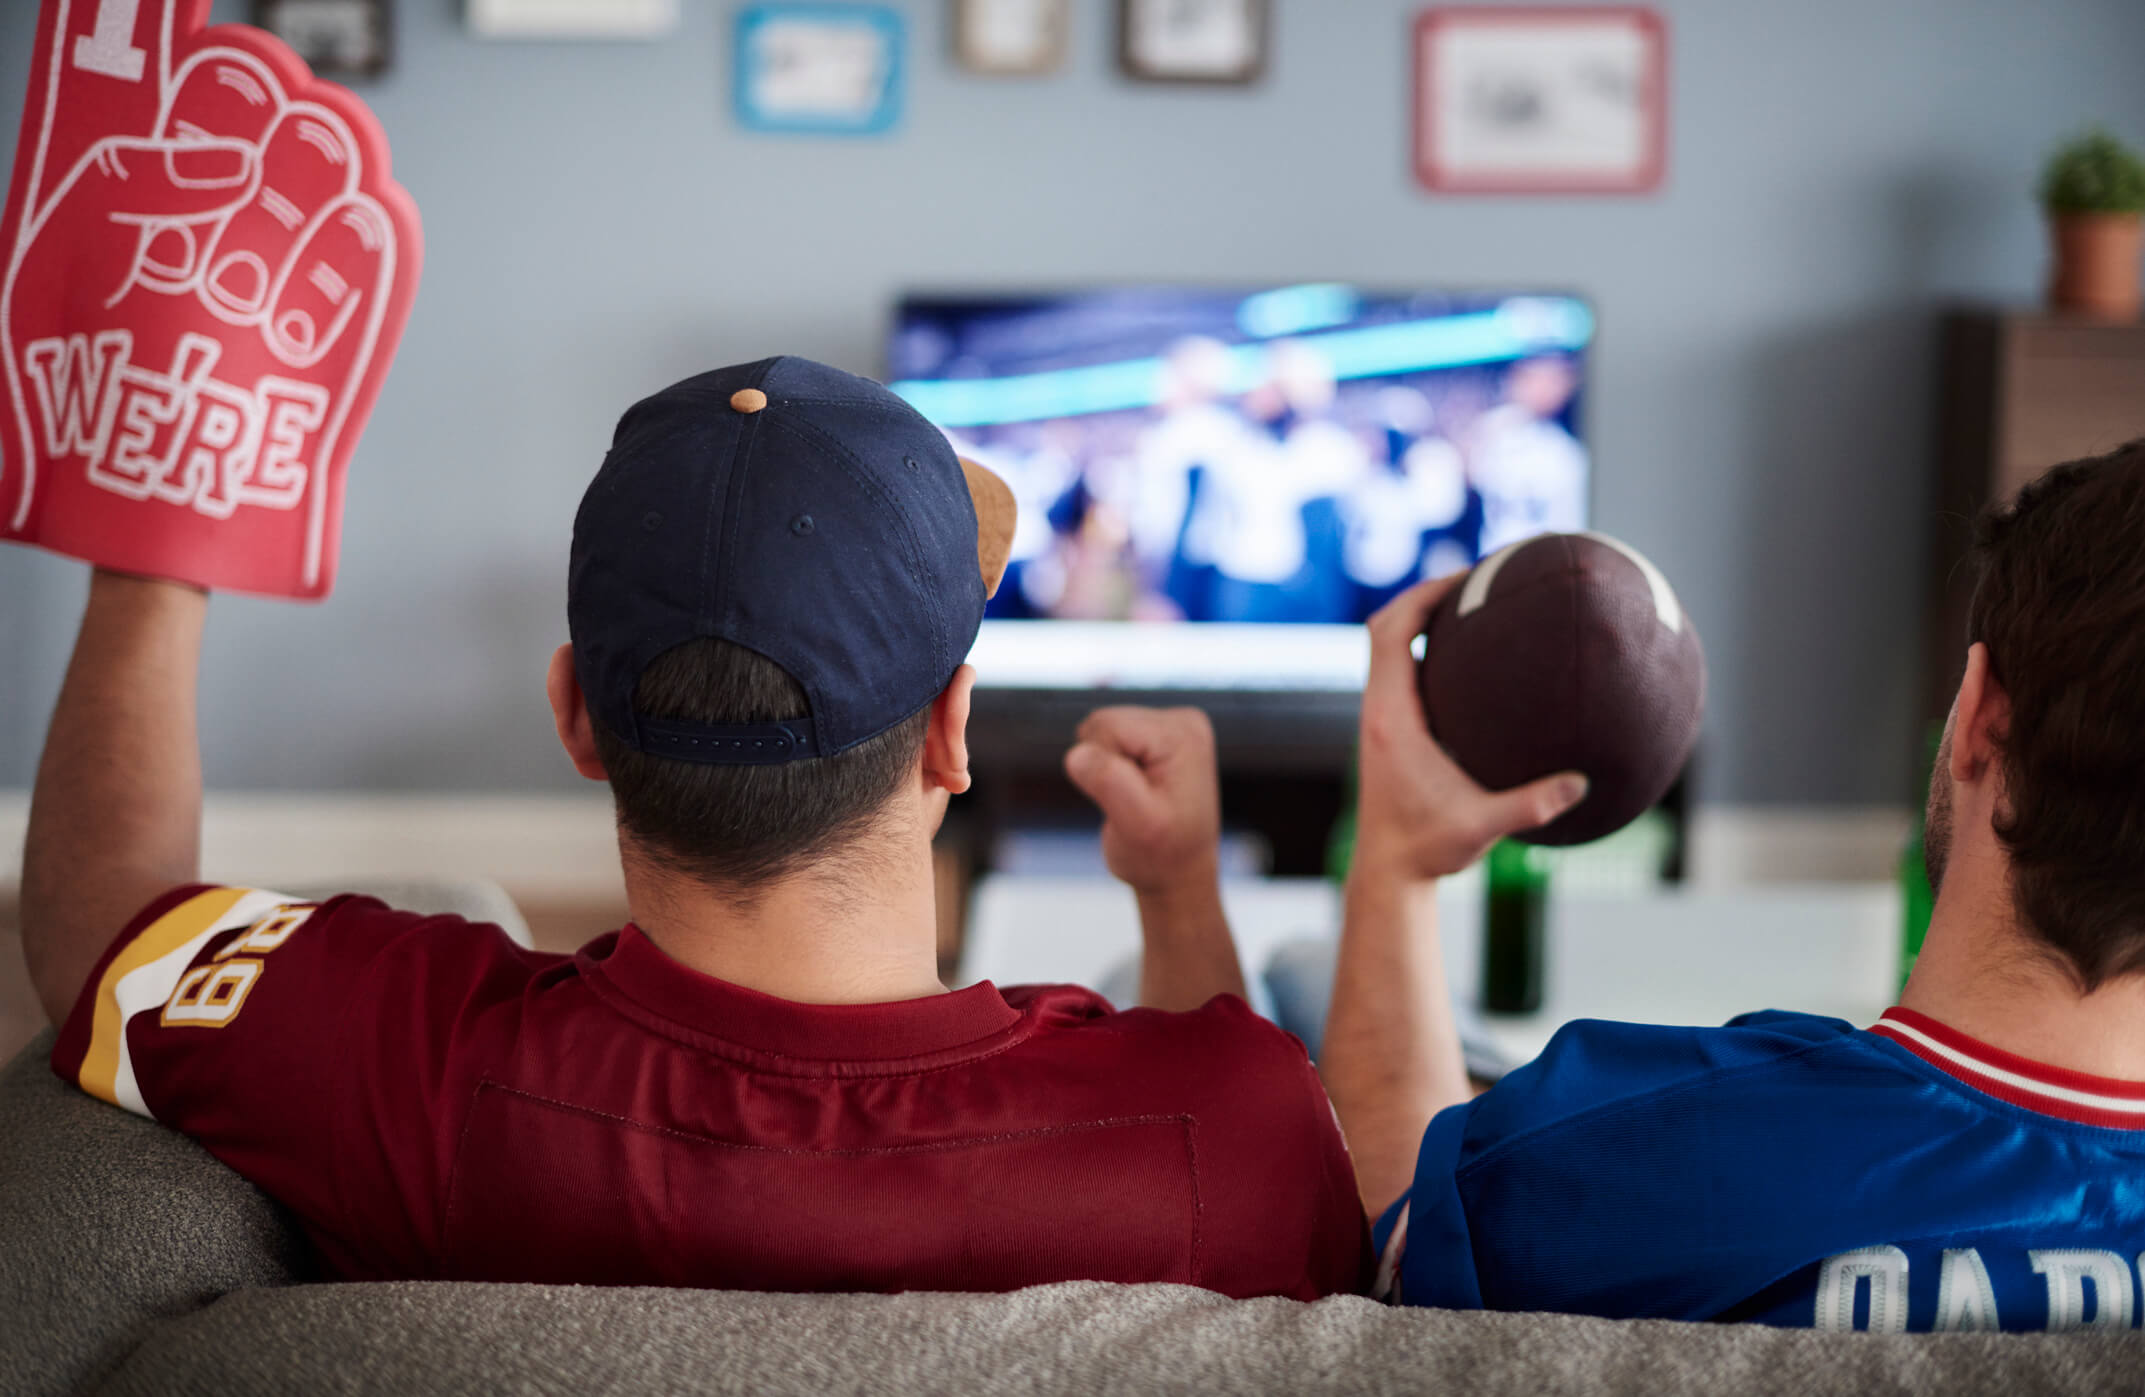 Two guys sitting on couch wearing football jerseys watching the game